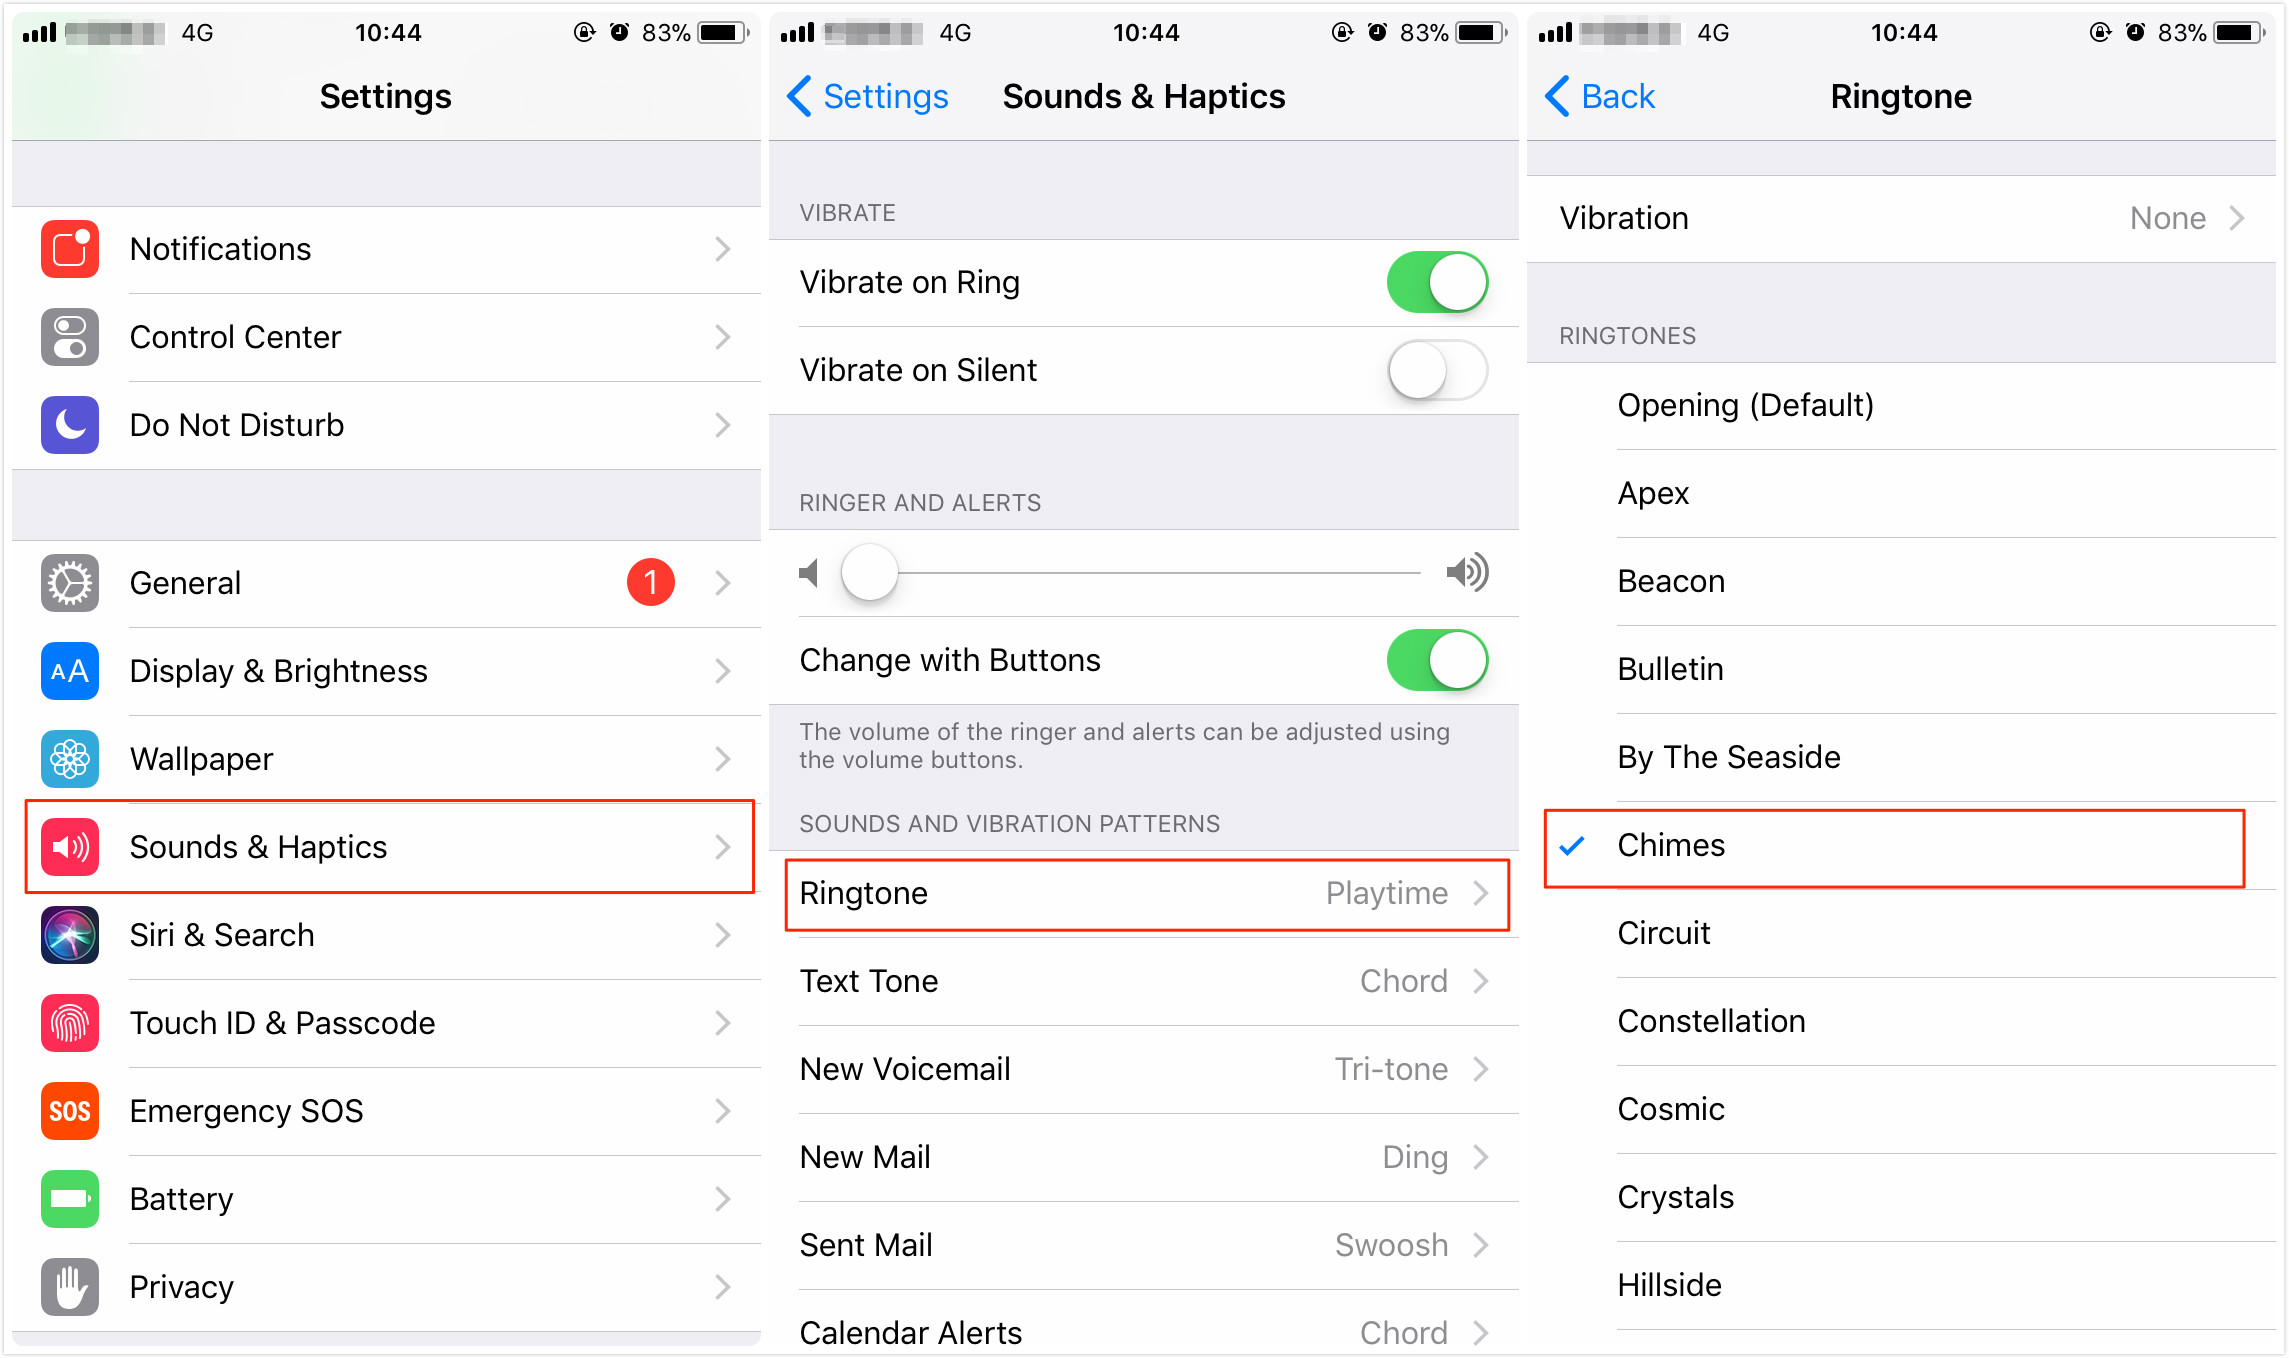 How to Change the Default Ringtone on iPhone